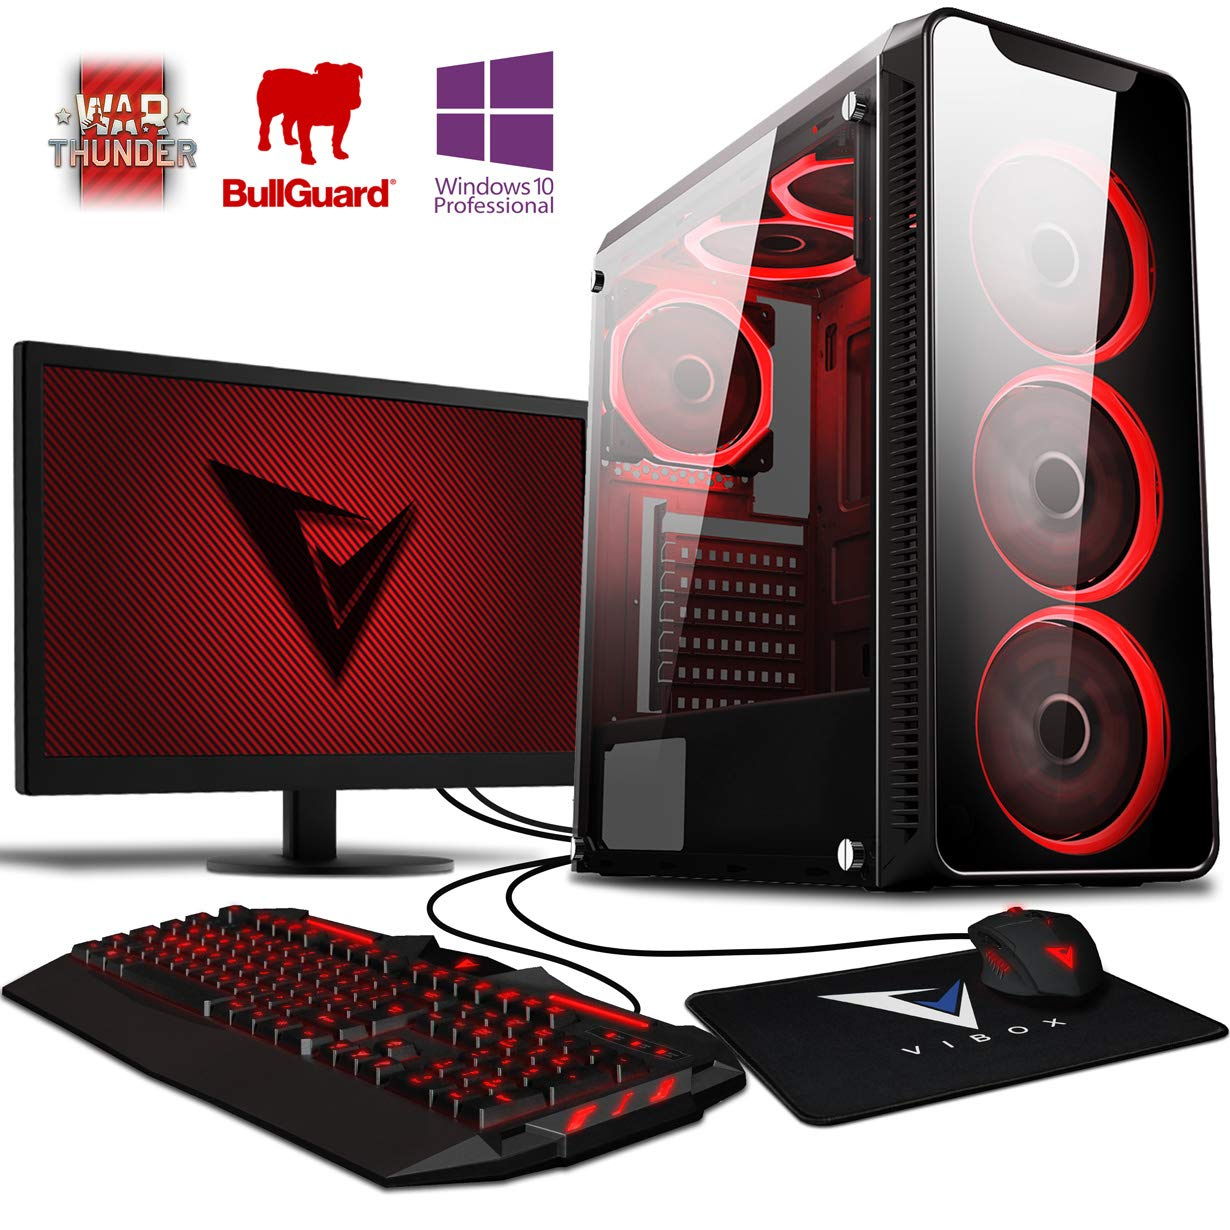 Vibox Precision 6XLW - Ordenador de sobremesa (AMD FX-4300, 32 GB de RAM, 2000 GB, Nvidia GT 730, Windows 10), Color Negro - Kit con Monitor de 22